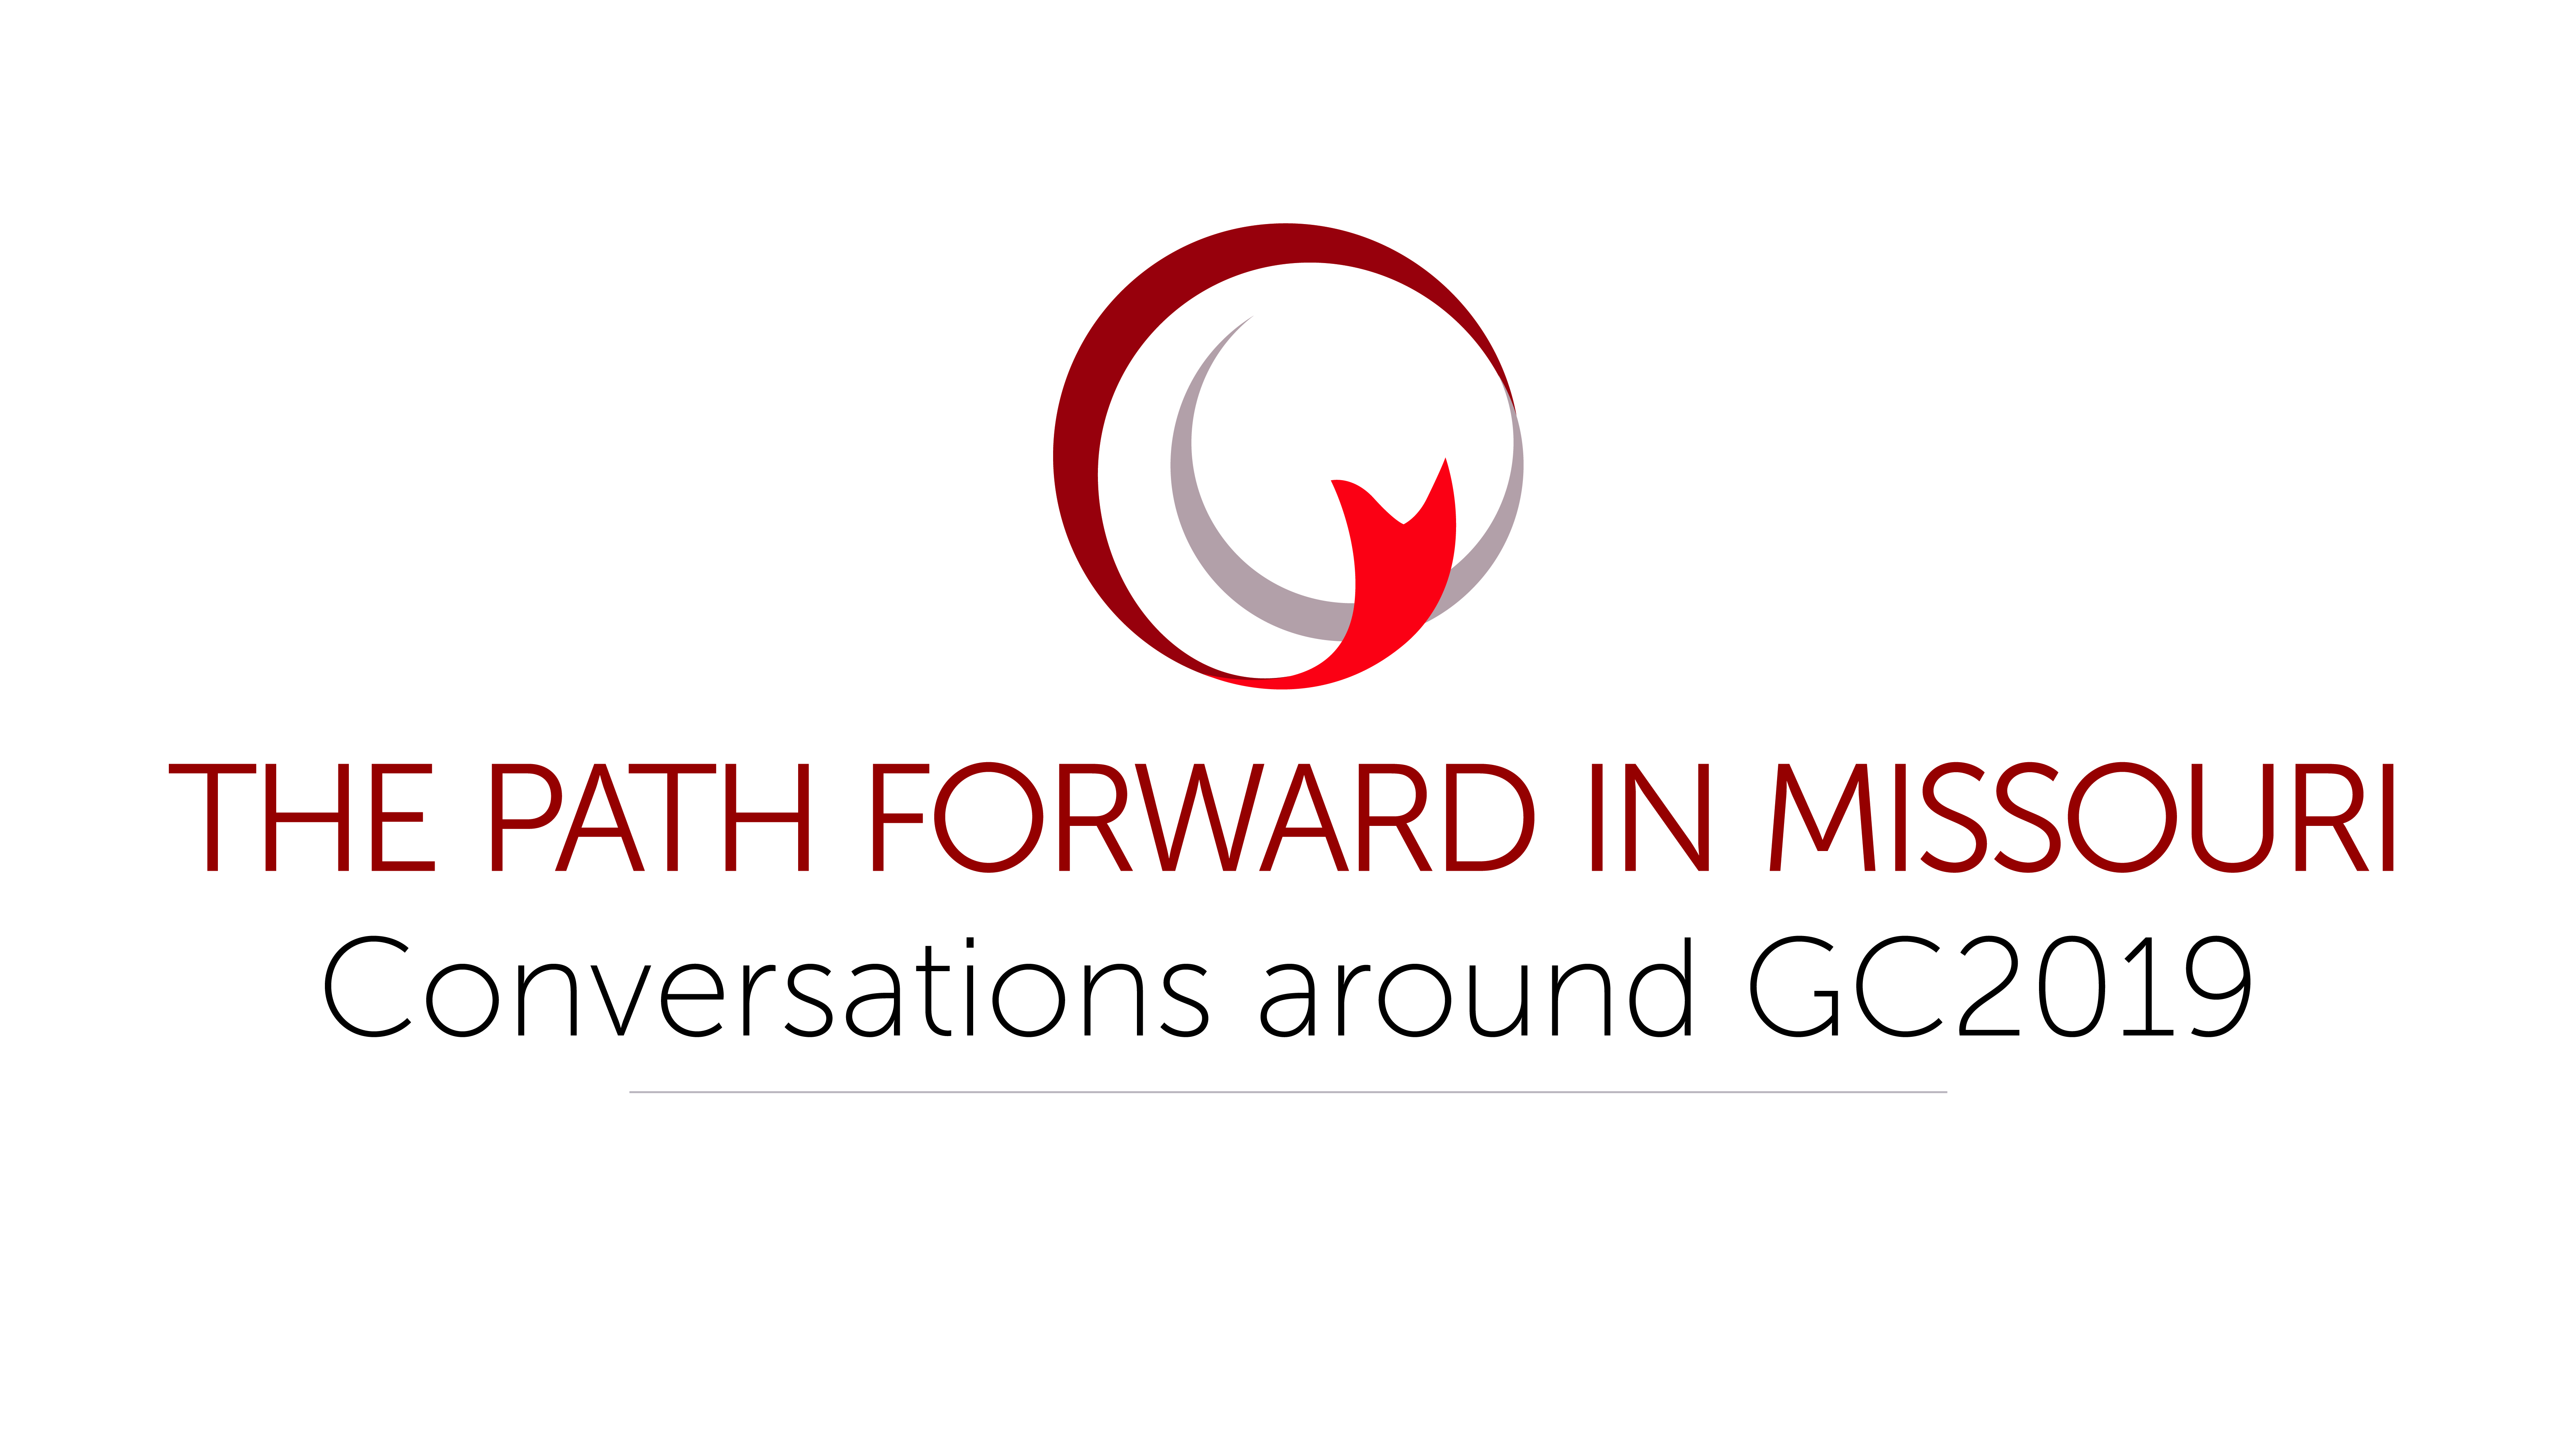 Bishop's GC2019 Q-and-A Webinar